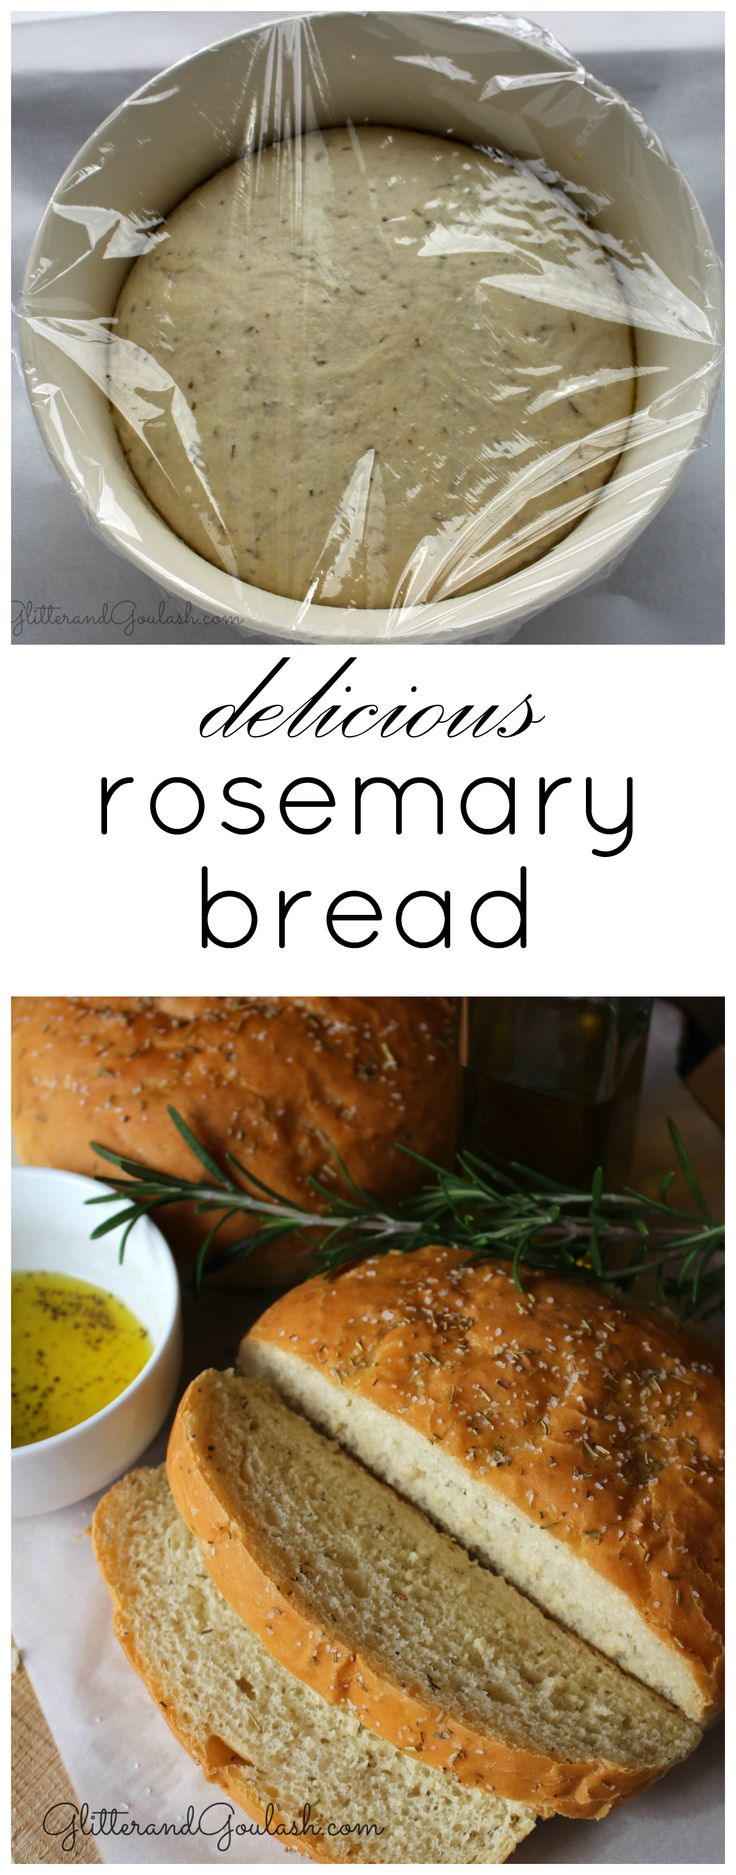 Copycat Macaroni Grill Rosemary Bread Oh My Gosh This Was The Best Rosemary Bread Recipe